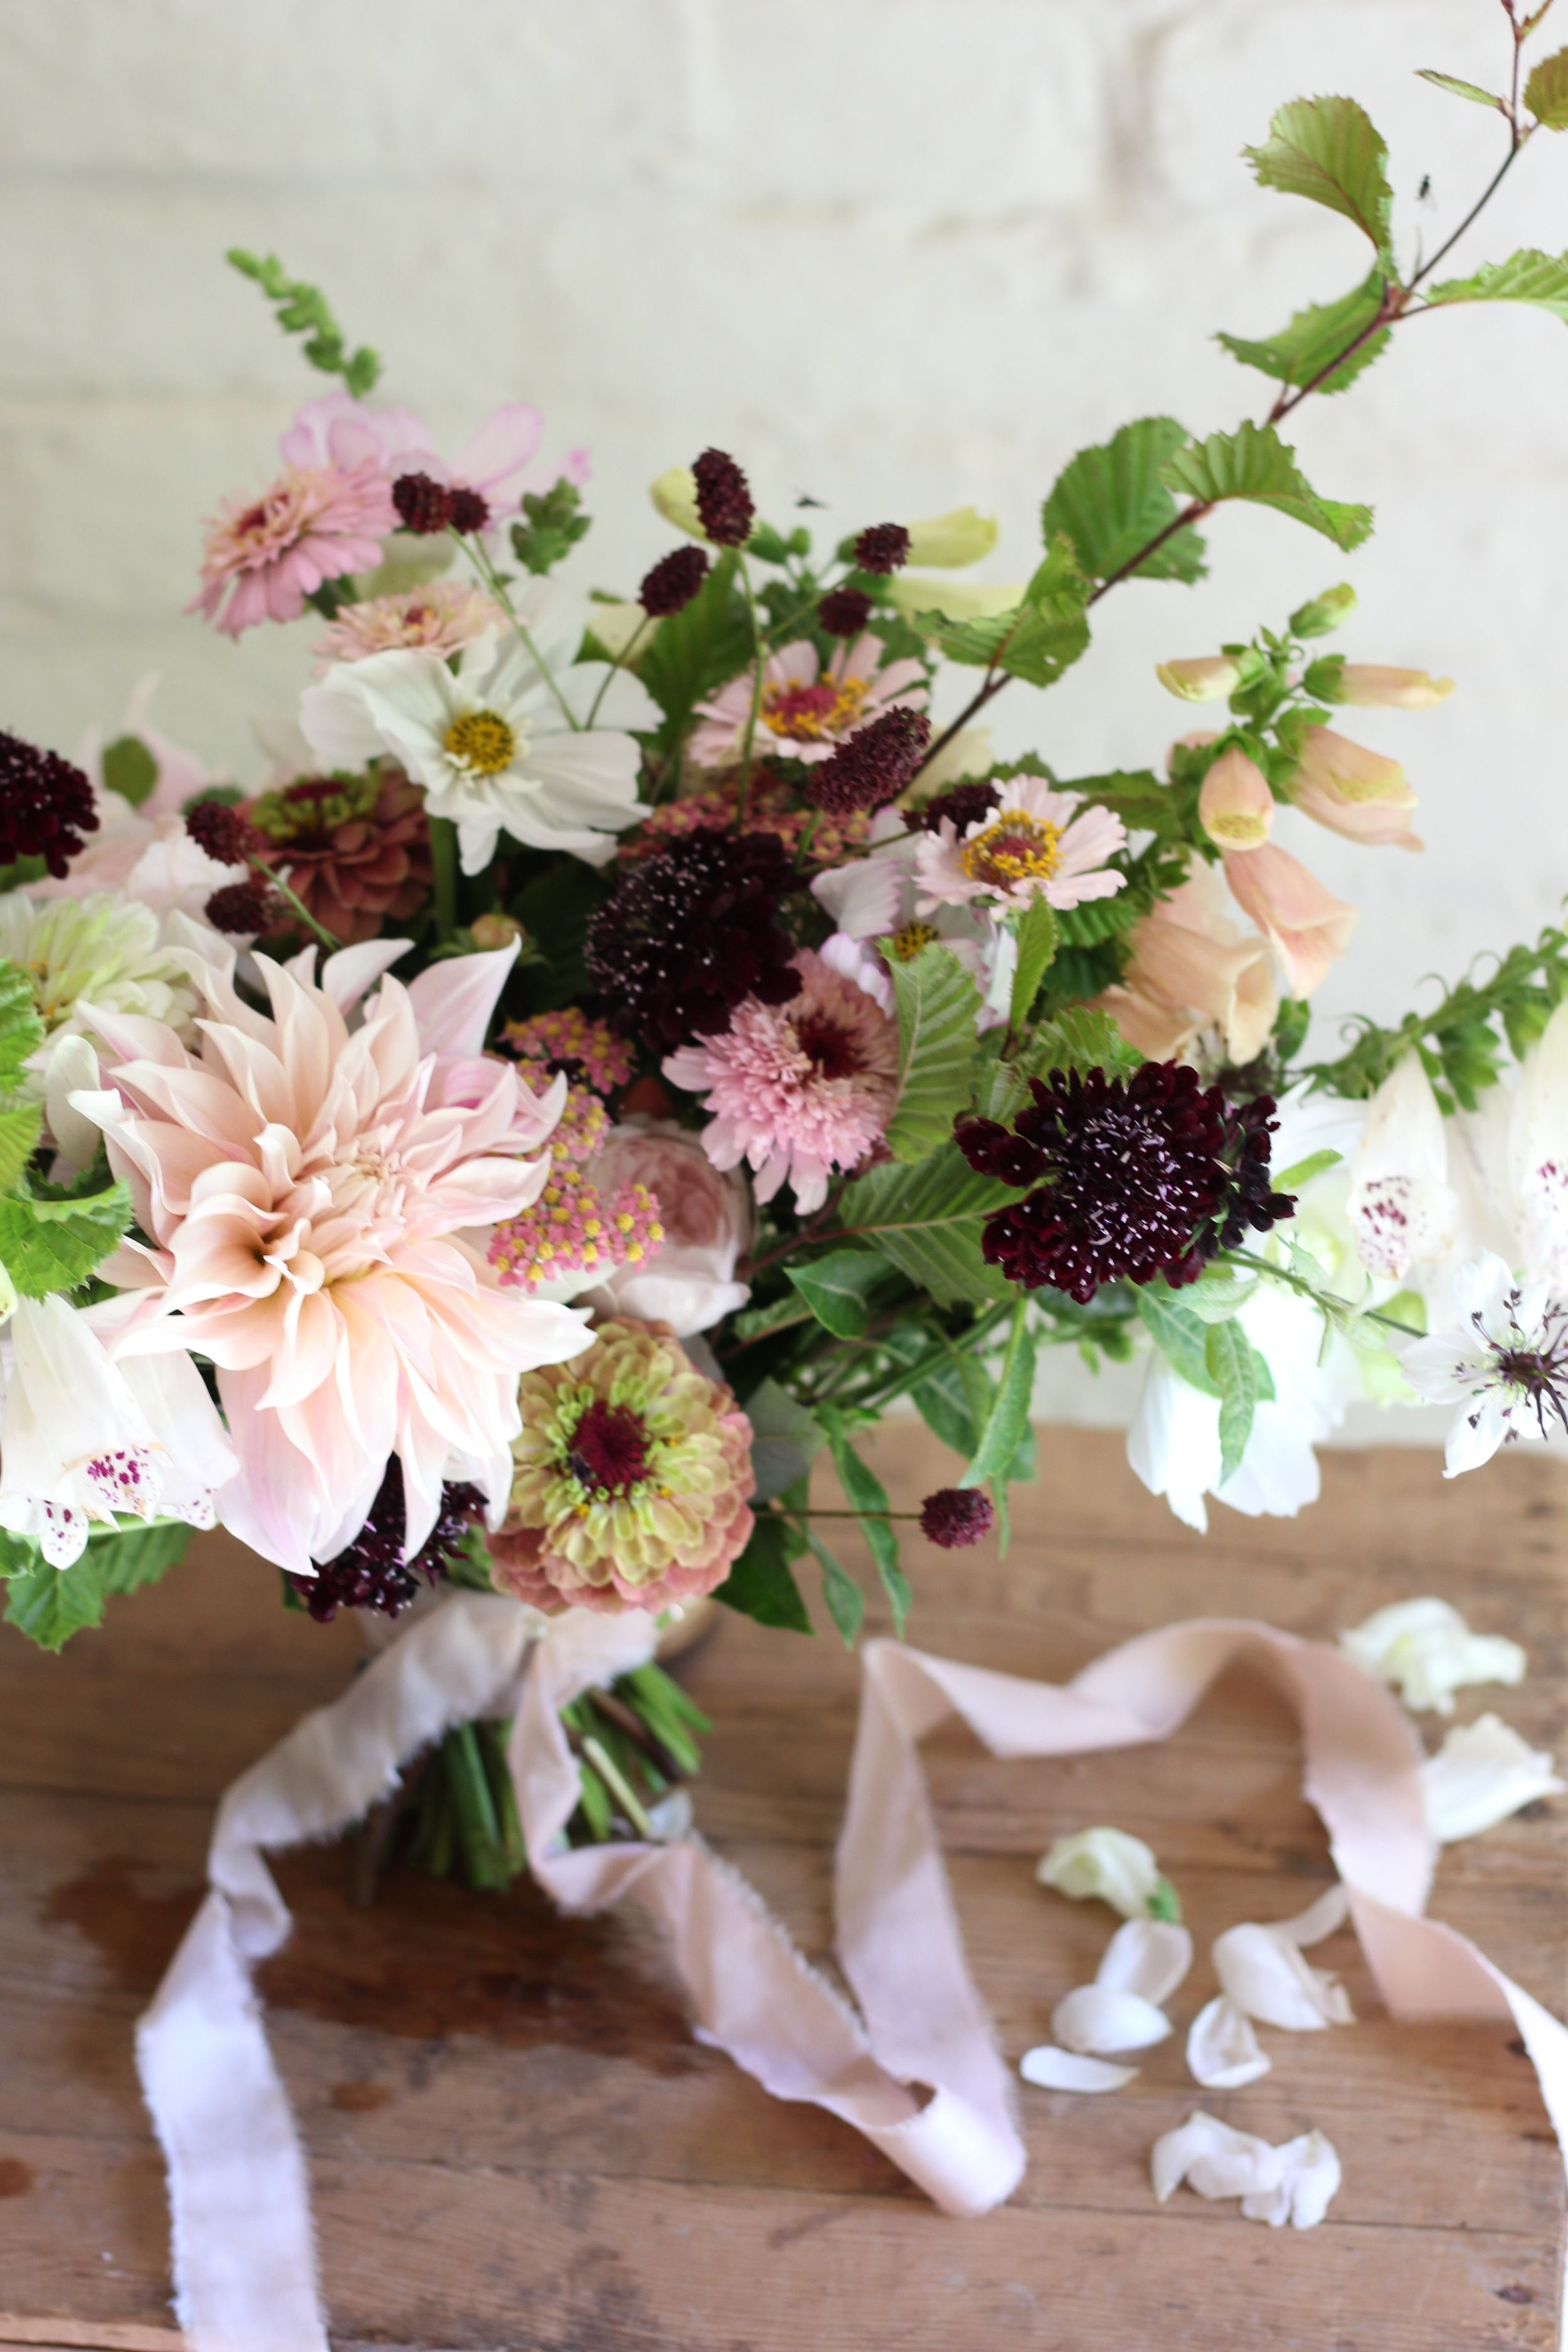 British Grown Summer Flowers With Dashes of Burgundy (A